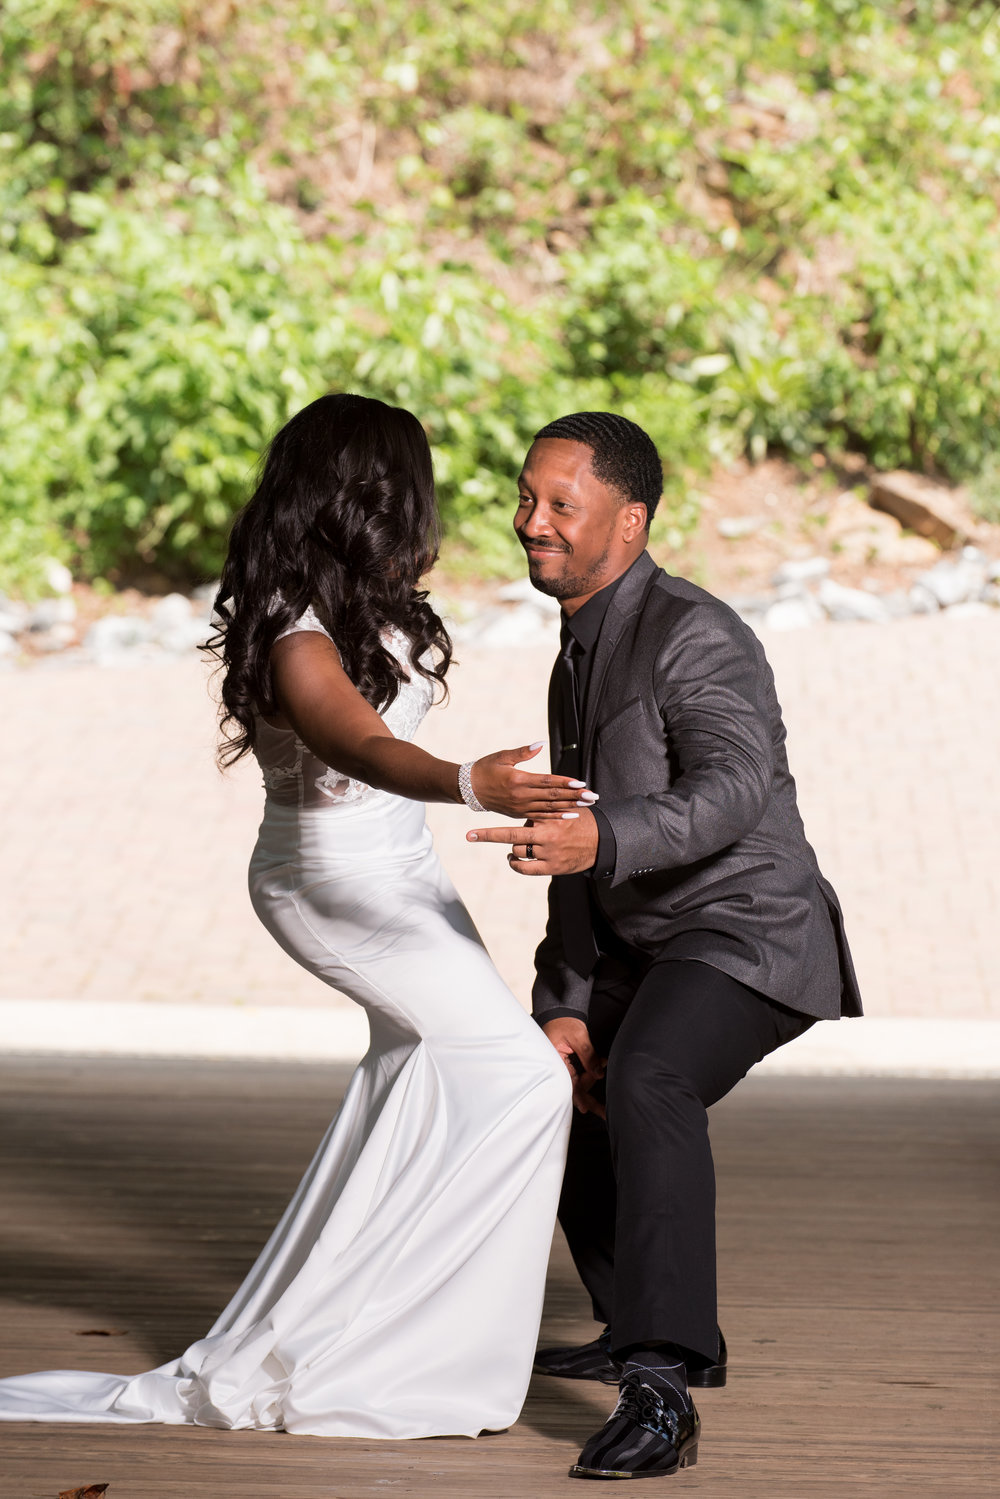 Toya+Mike_Private-Leighton DaCosta Photographer-untitled-9594-2.jpg